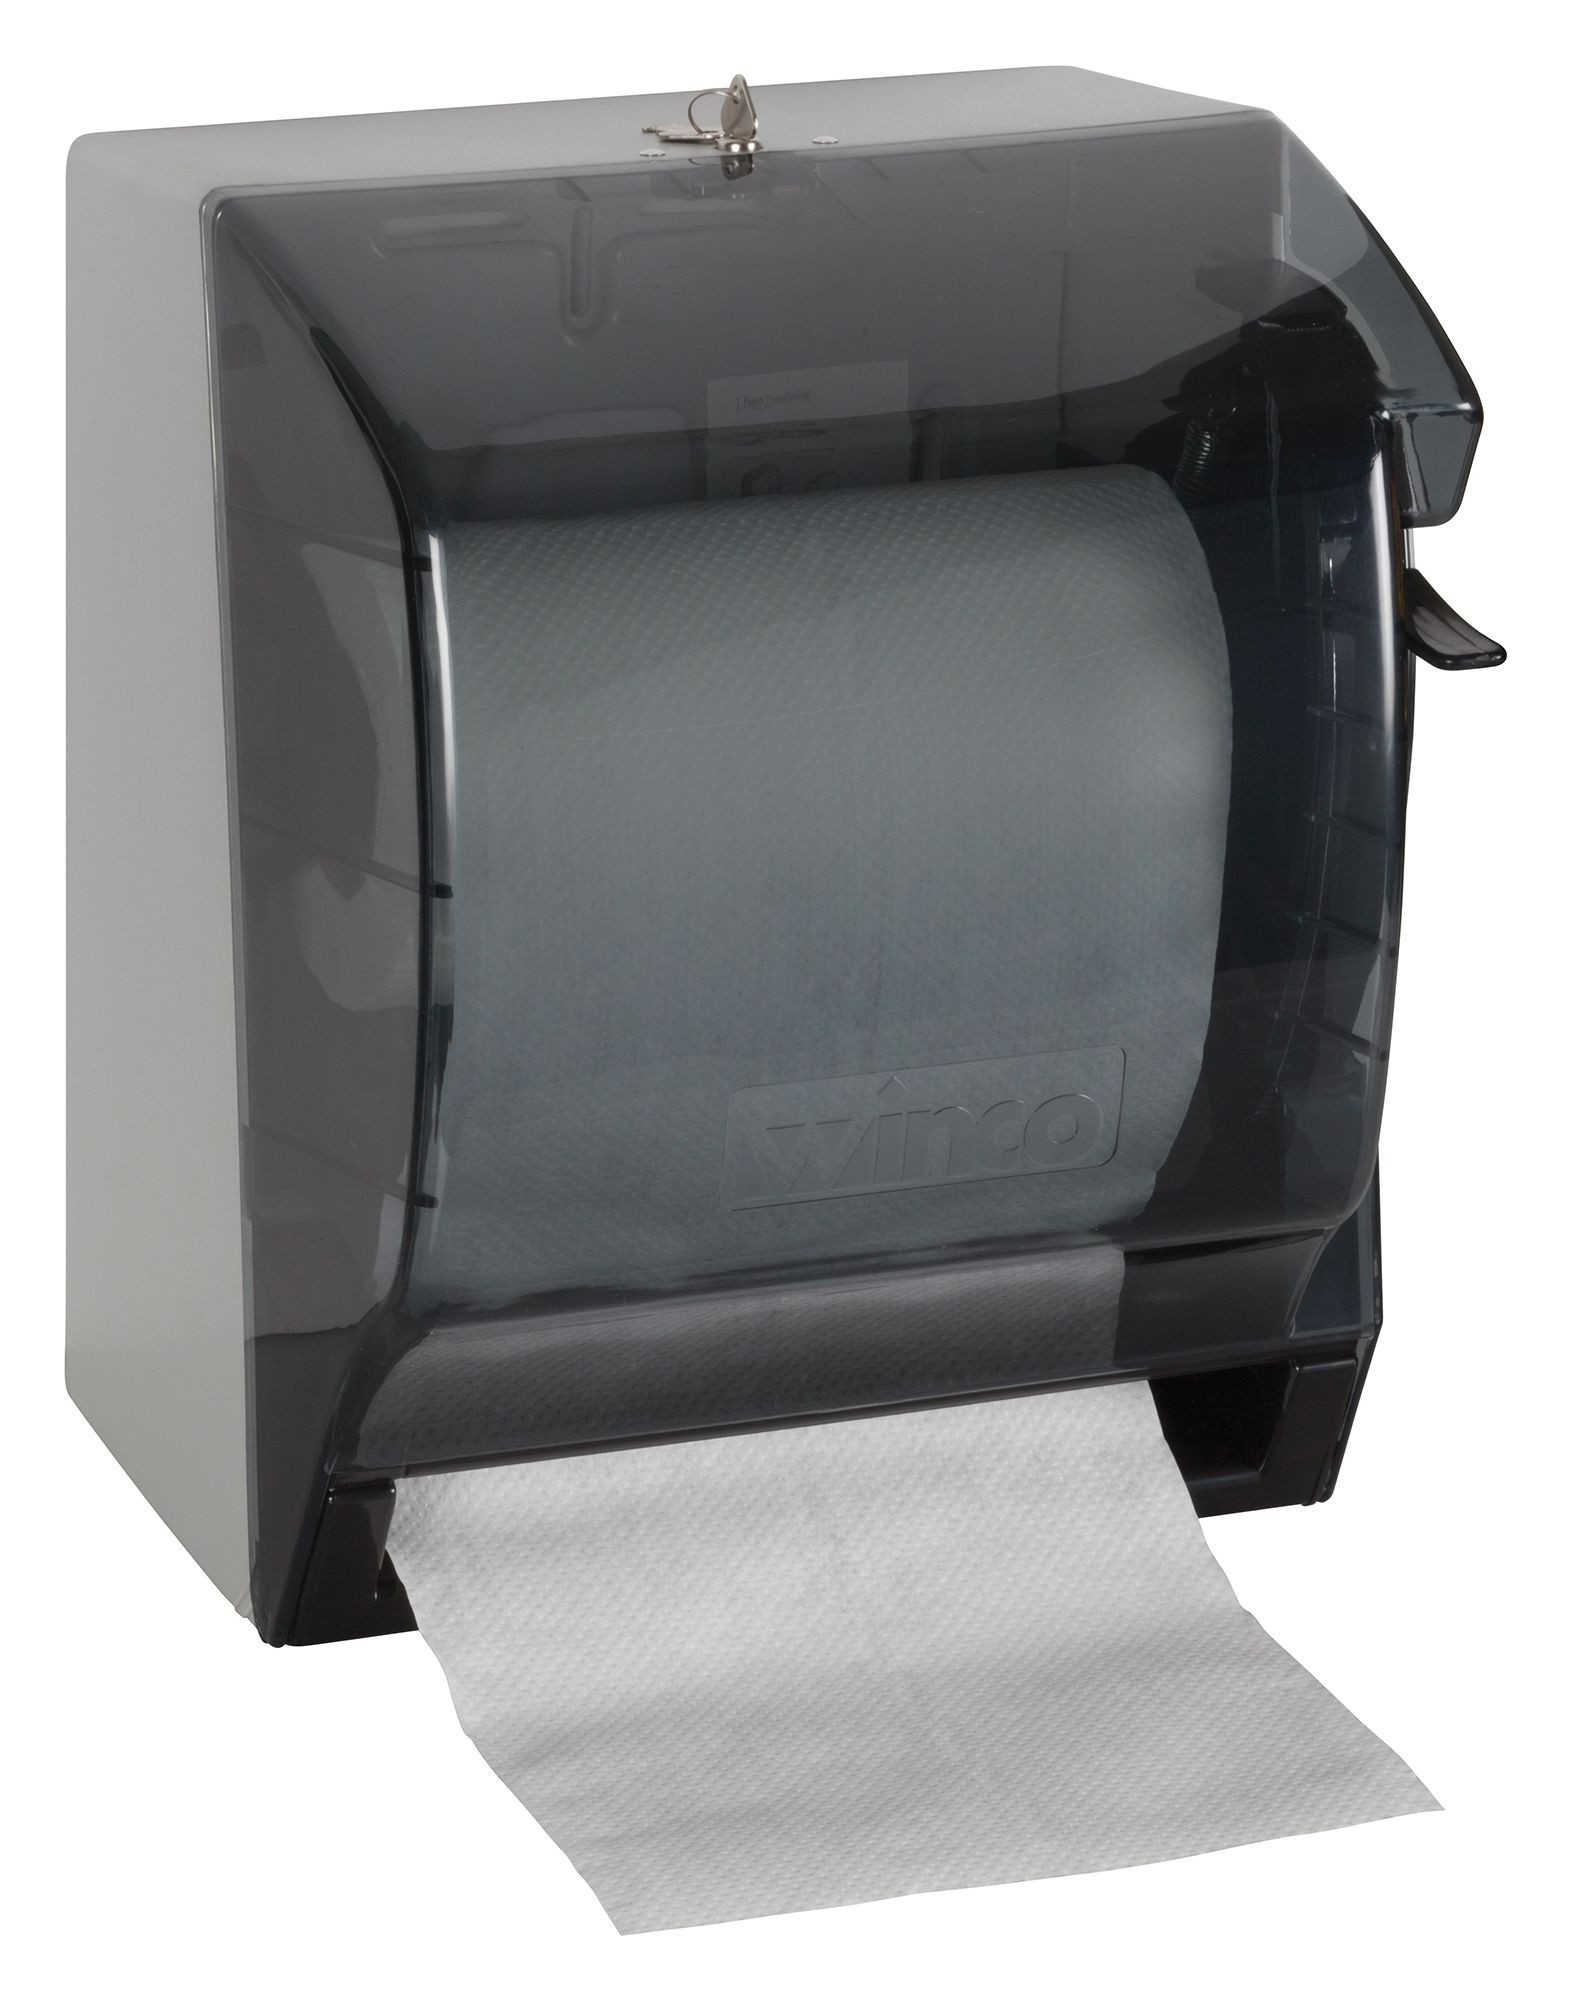 Lever-Handle Roll Paper Towel Dispenser